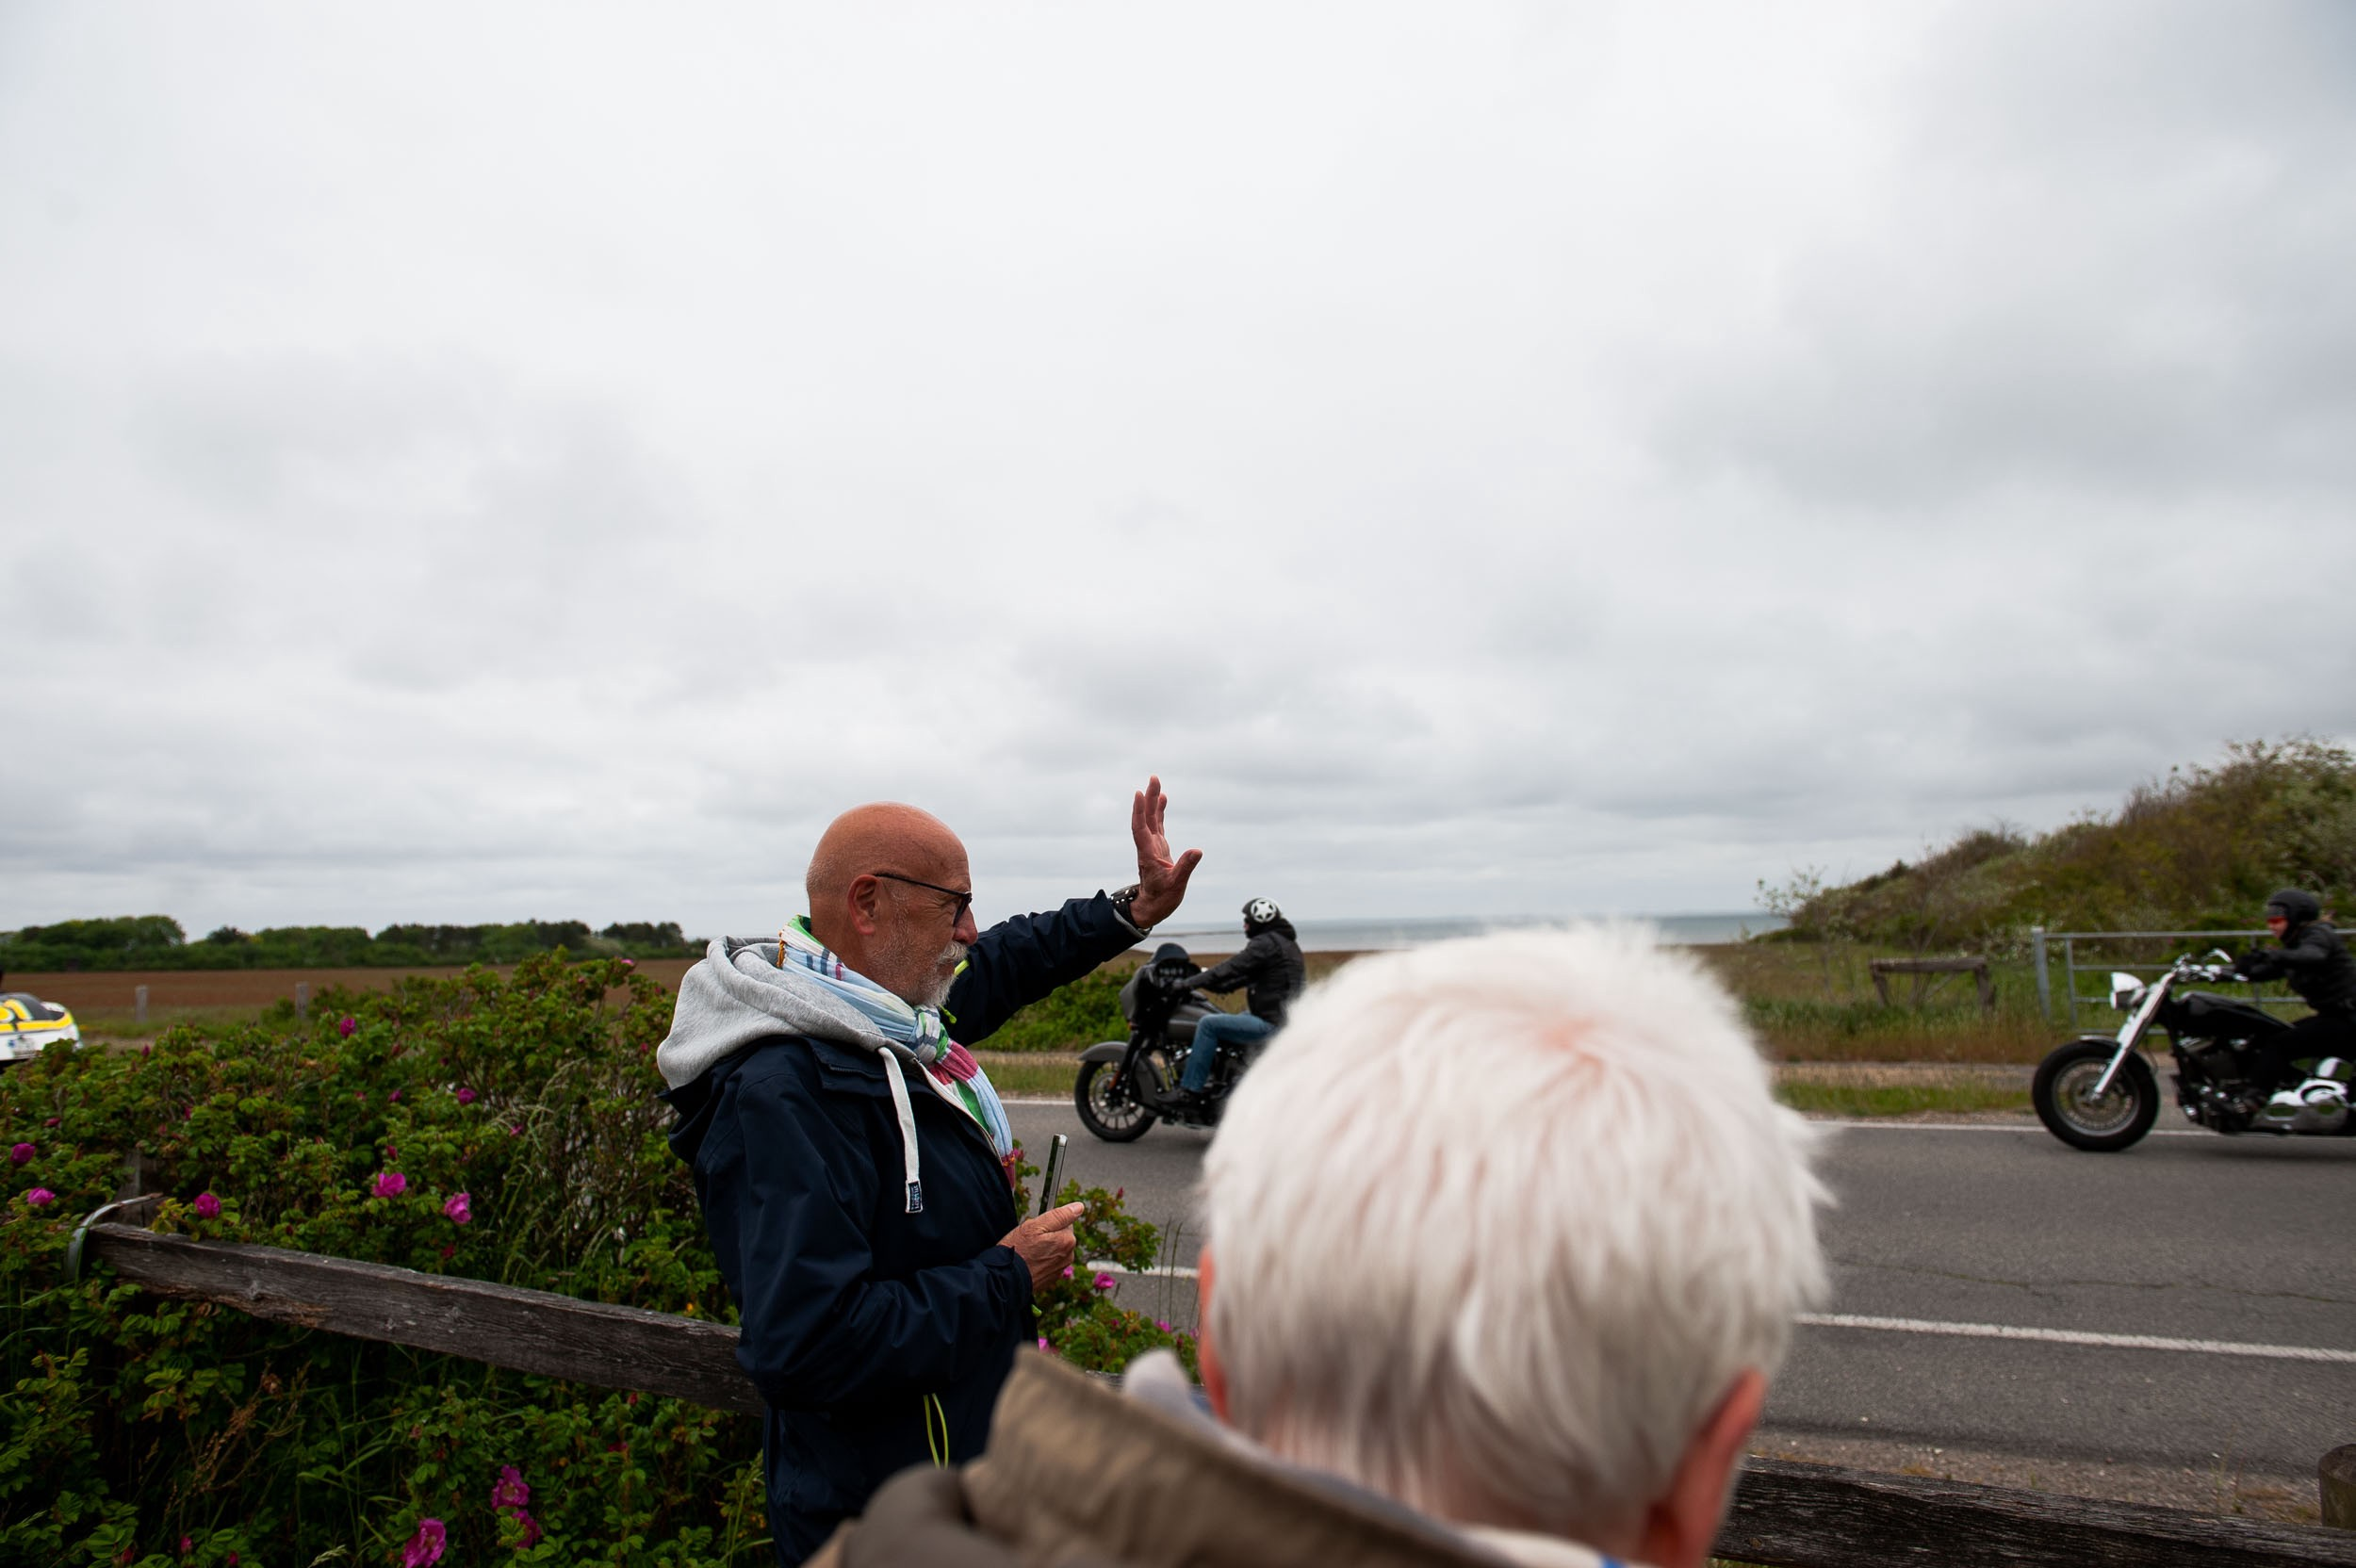 Dad waves at the participants of the Harley Davidson parade that was crossing the island. Sylt, Germany, May 25, 2019.